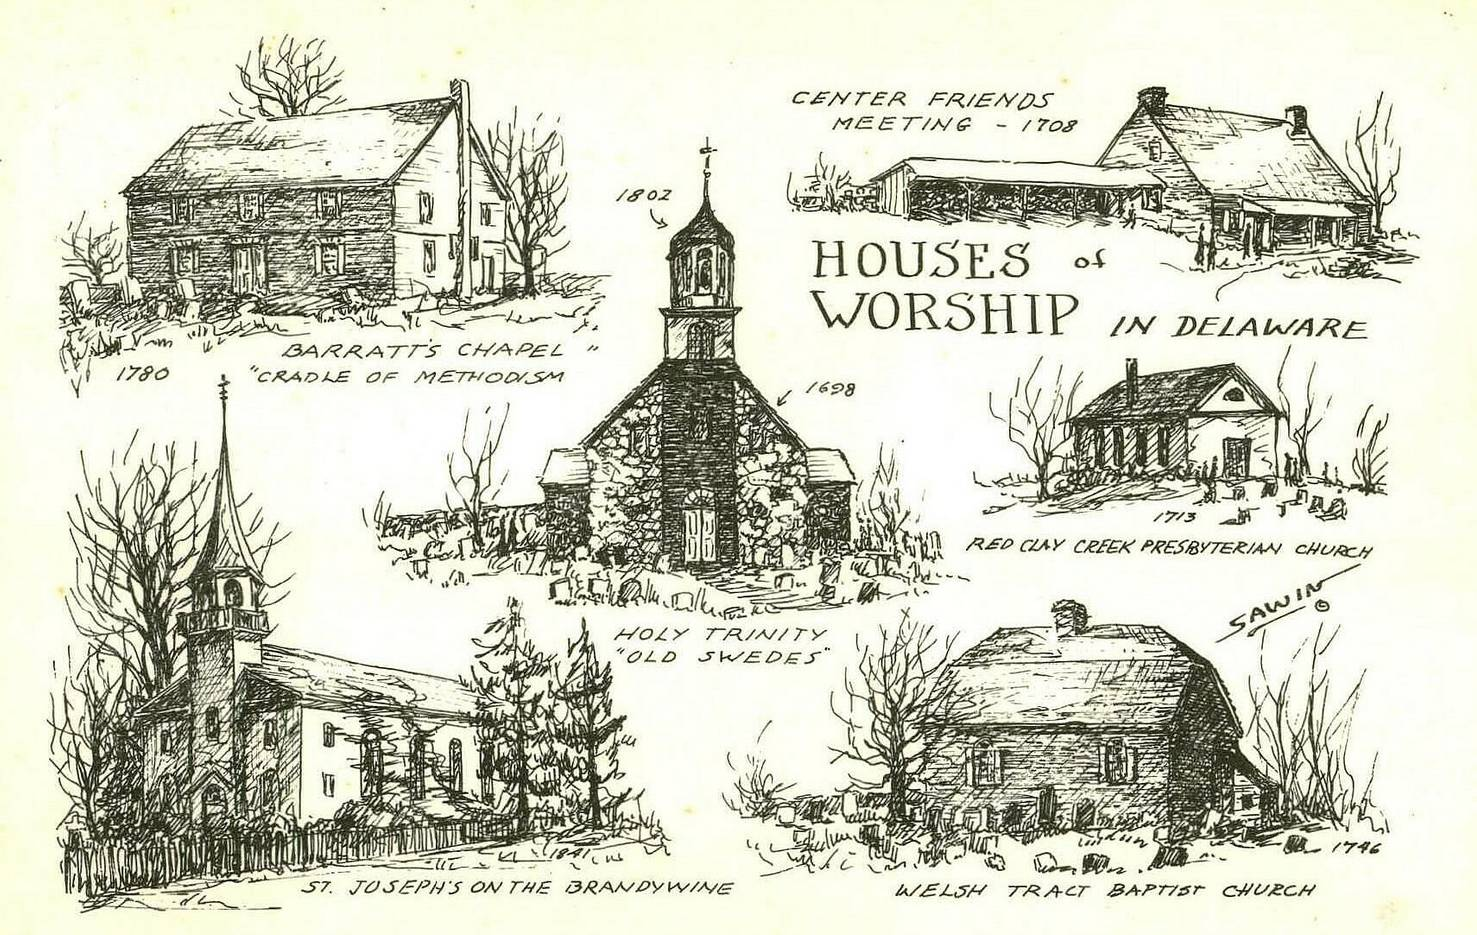 Early Churches of Delaware Post Card